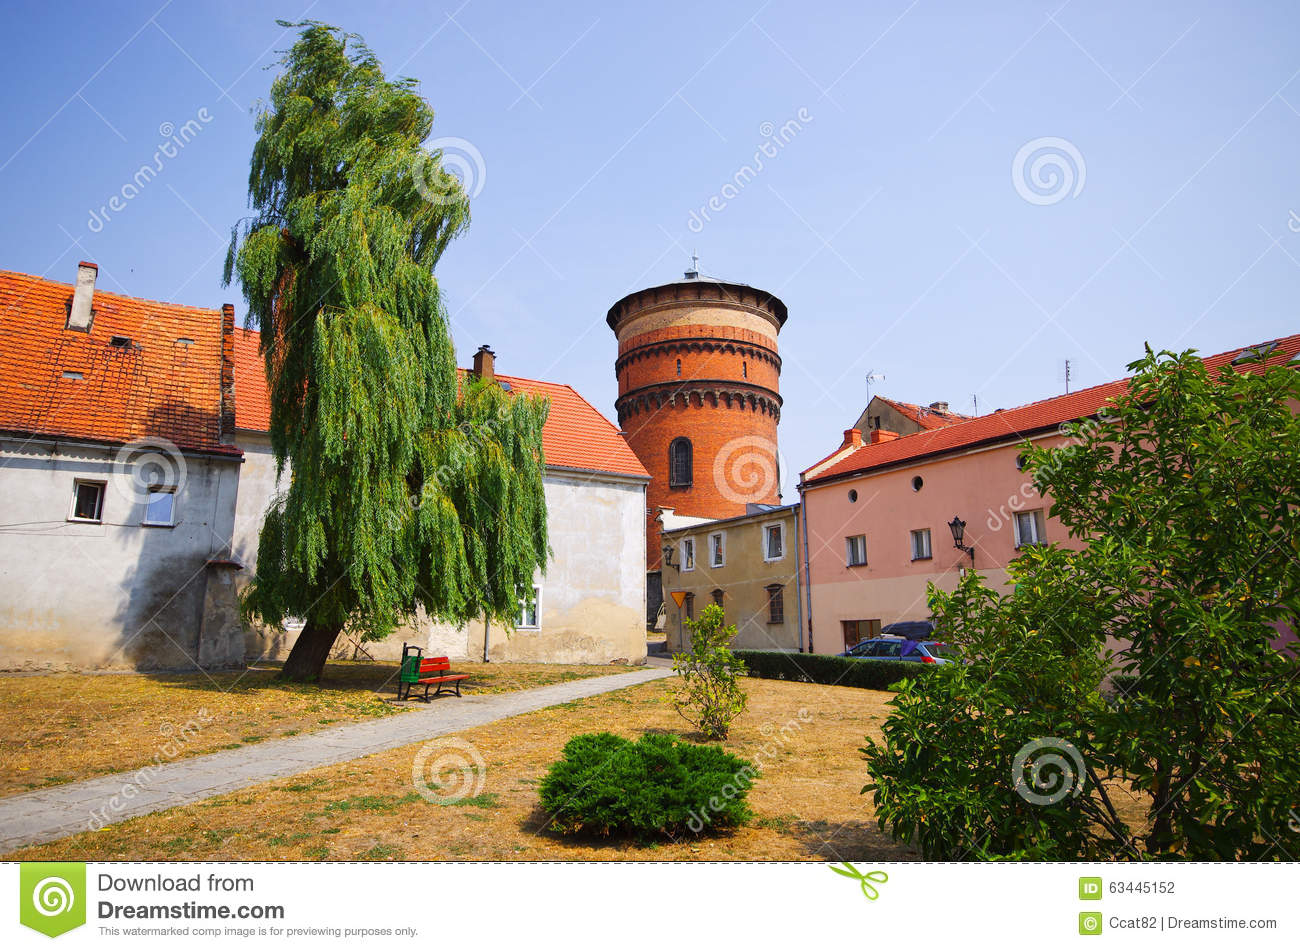 Jawor town in Poland